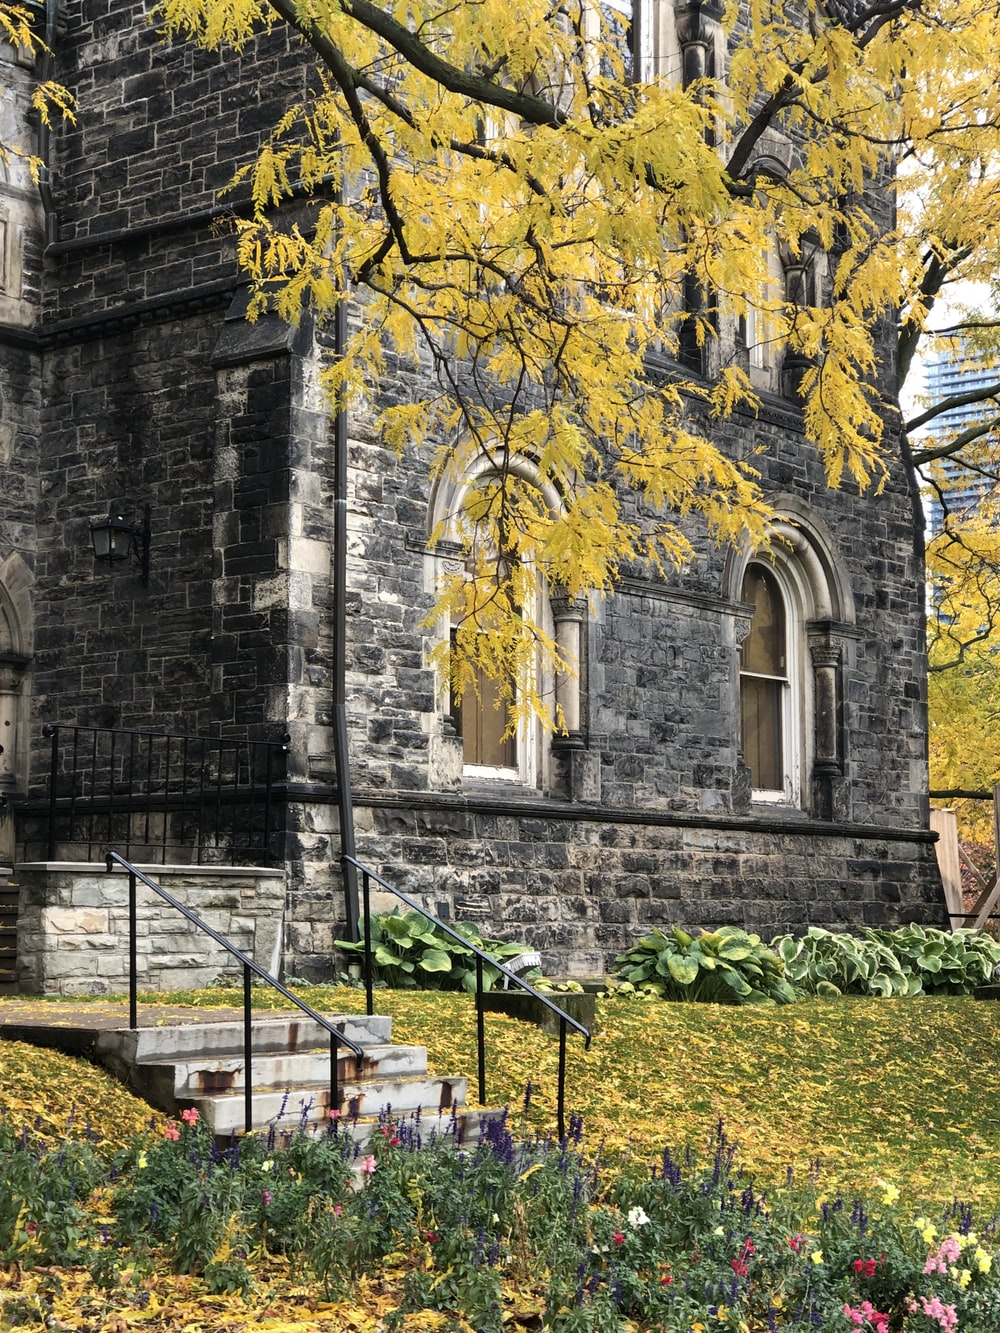 large hart house building with arched windows, stairs and yellow leaves handing from a tree